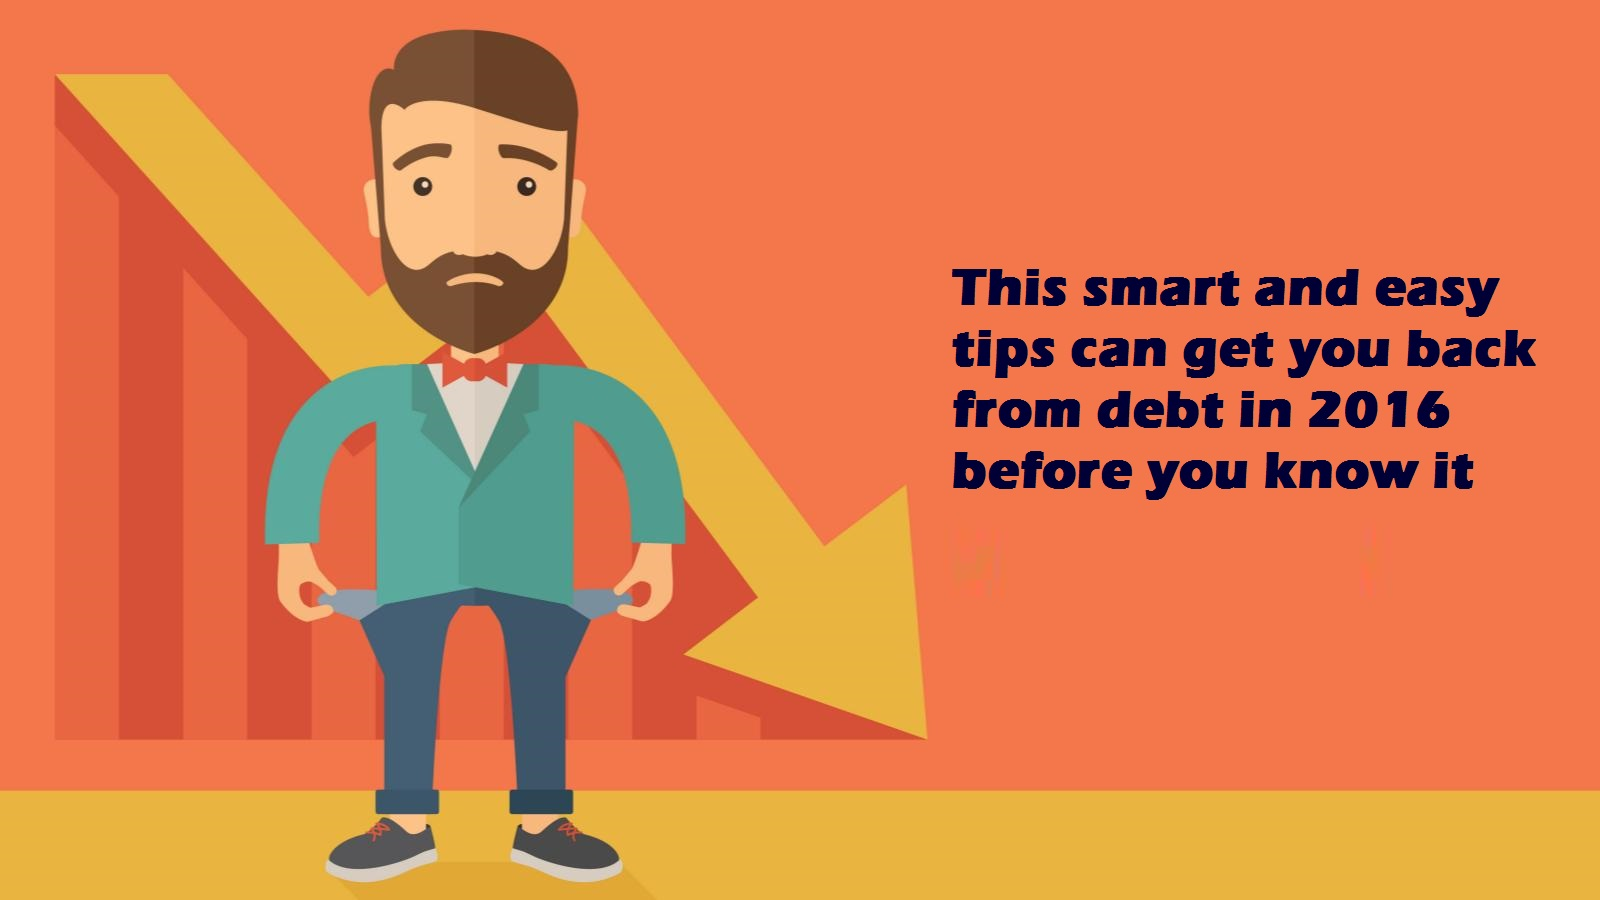 4-time-tested-tips-to-help-you-get-out-of-debt-in-2016